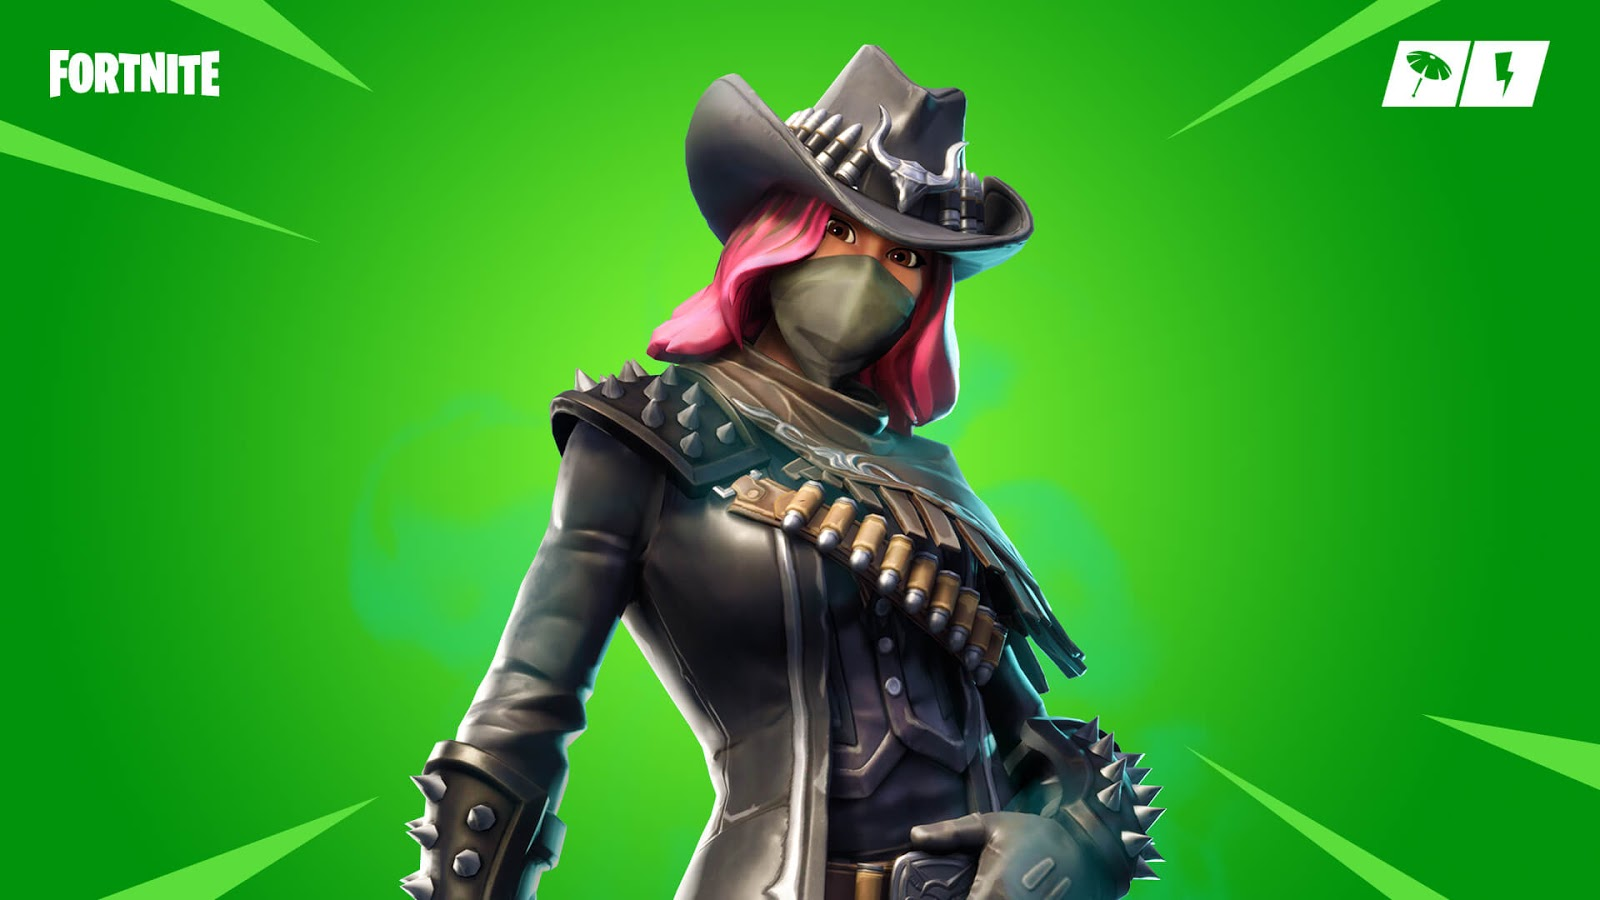 fortnite patch notes 6 20 fortnitemares event new six shooter and more - fortnite hexsylvania chests